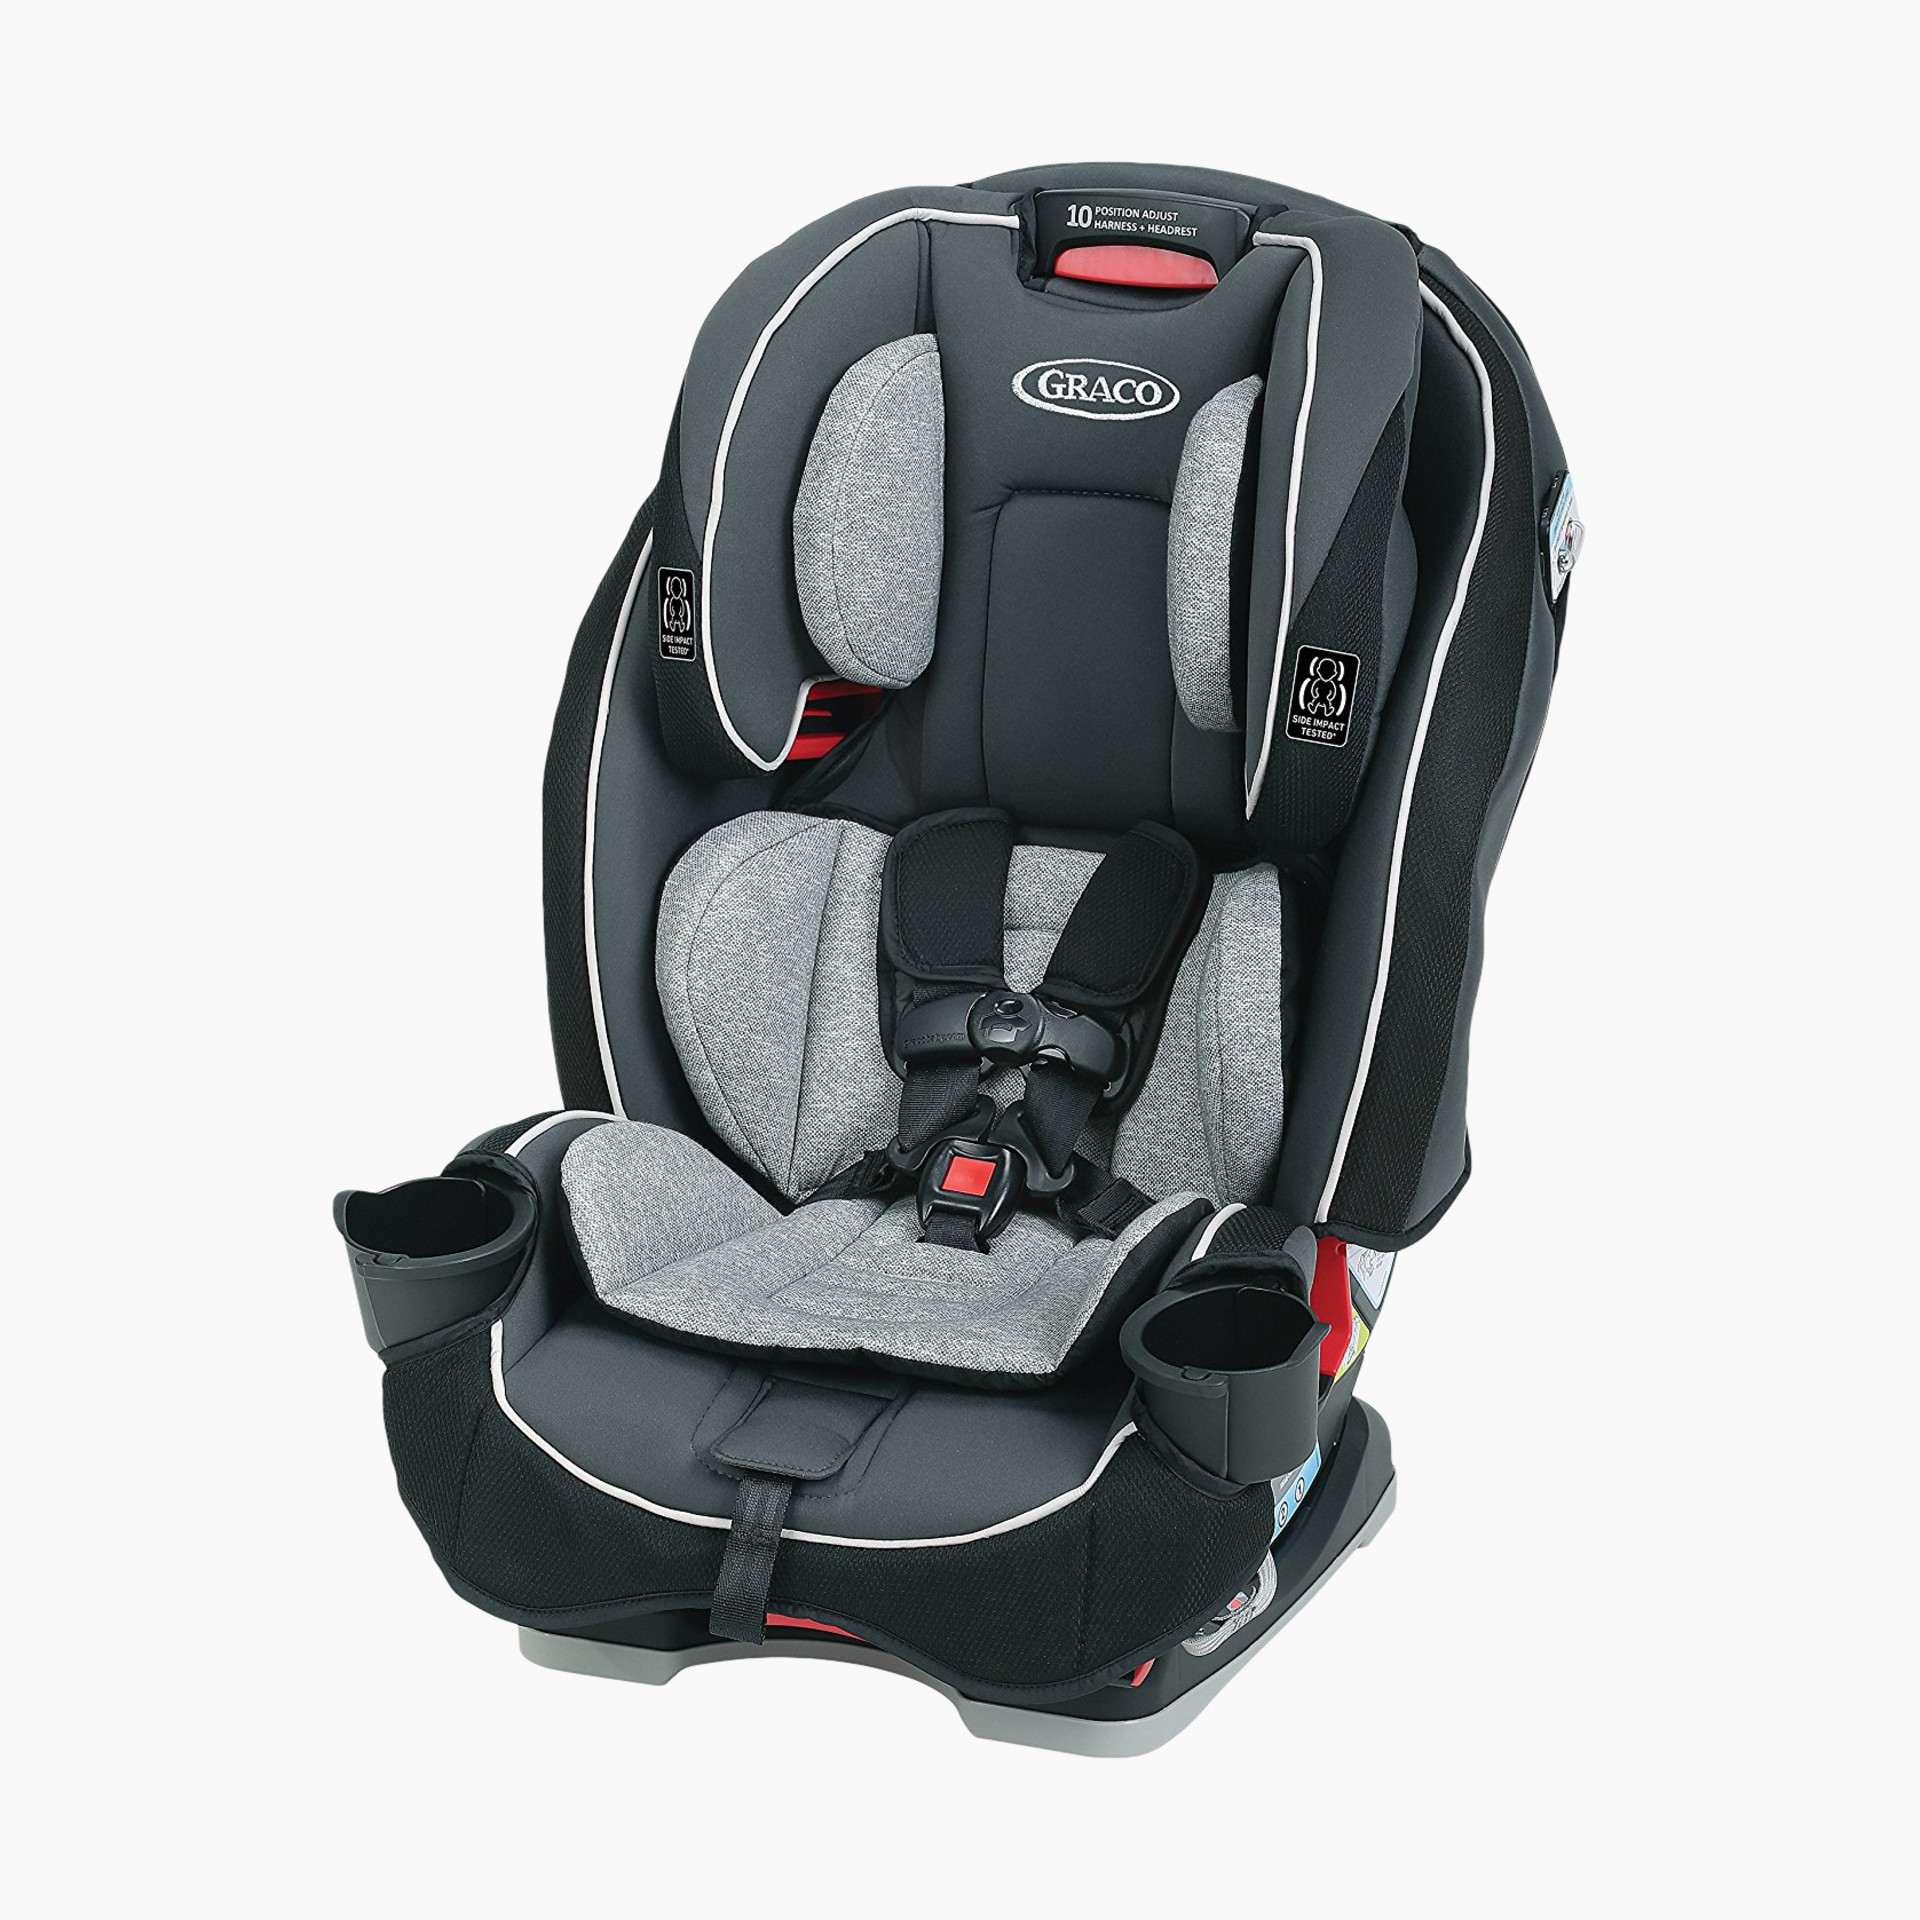 Gracoslimfit All In One Convertible Car Seat